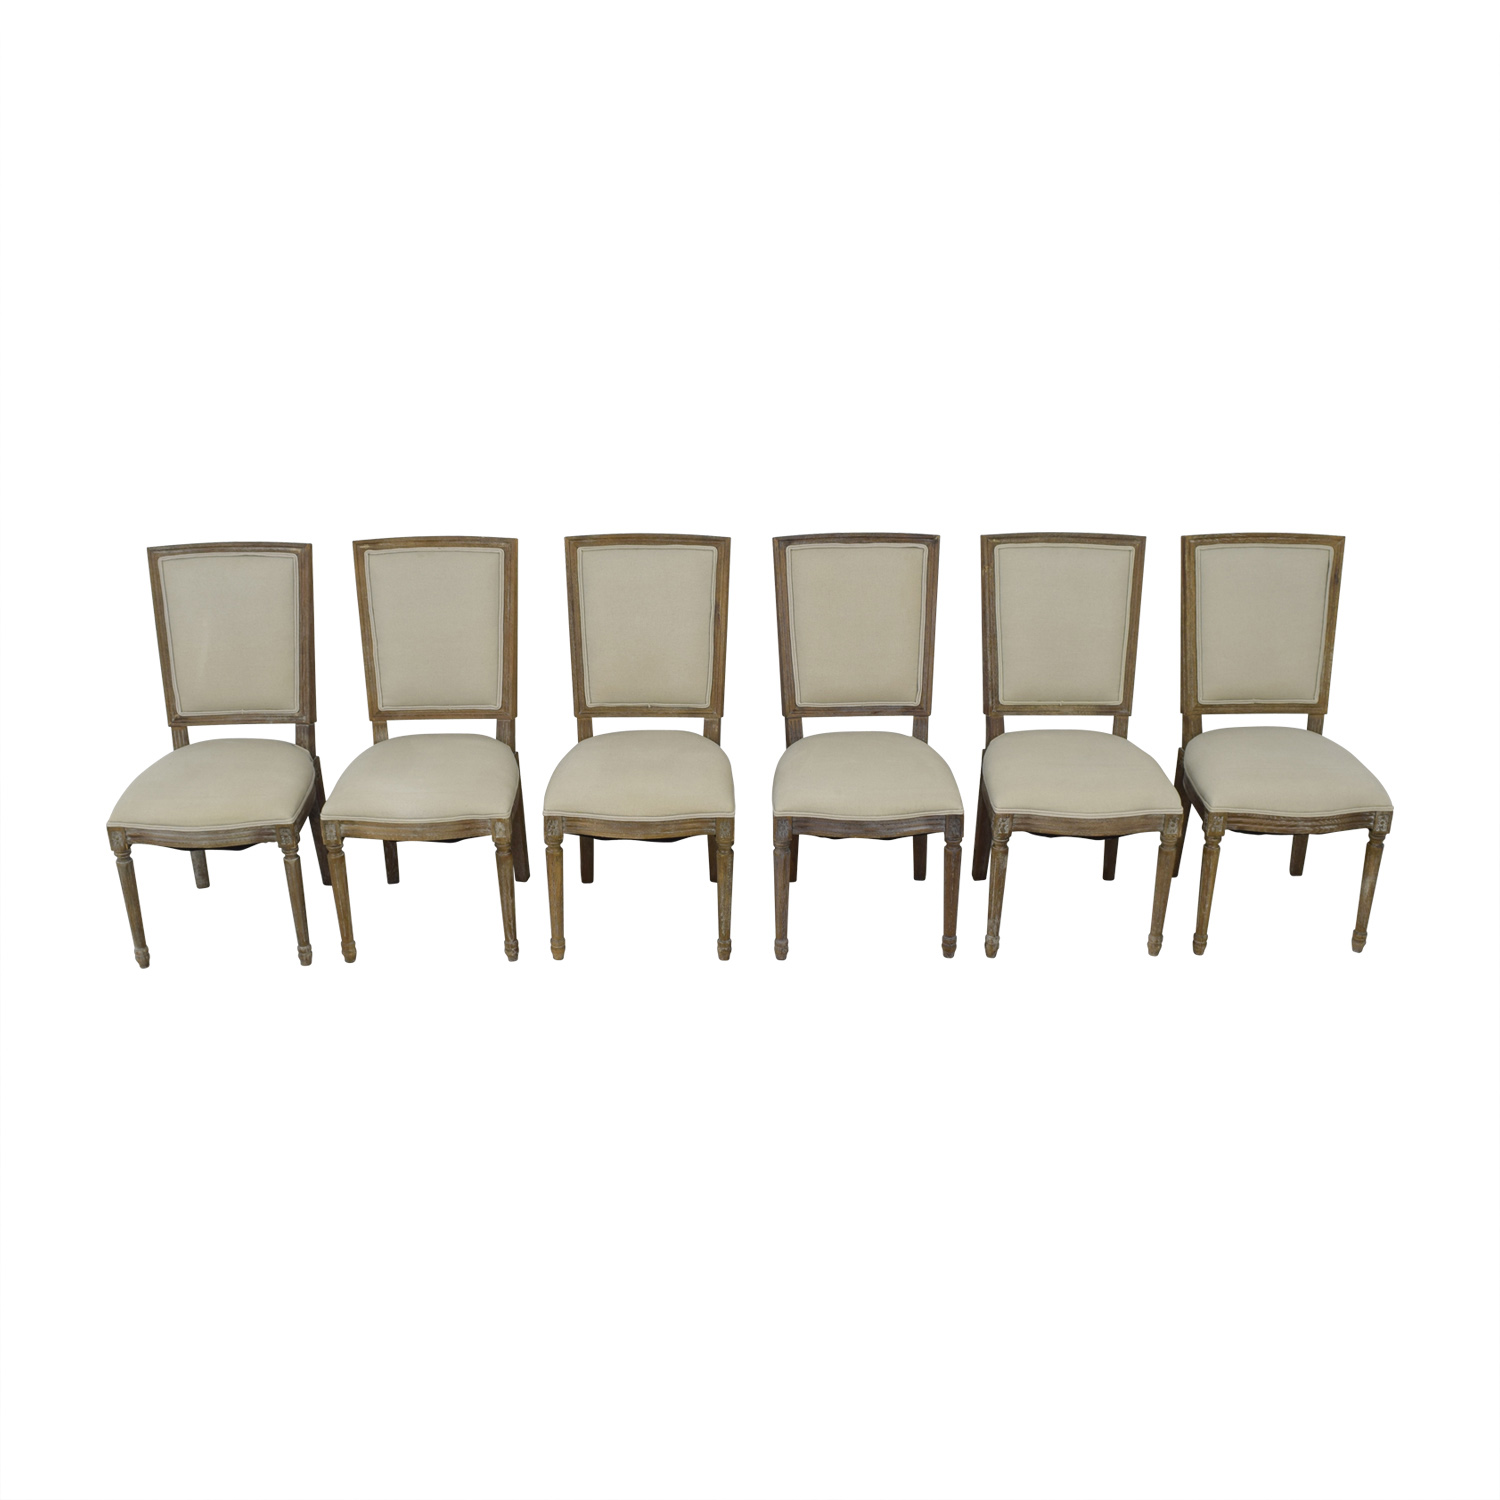 Brilliant 75 Off Arhaus Arhaus Adele Grey Upholstered Dining Chairs Chairs Machost Co Dining Chair Design Ideas Machostcouk